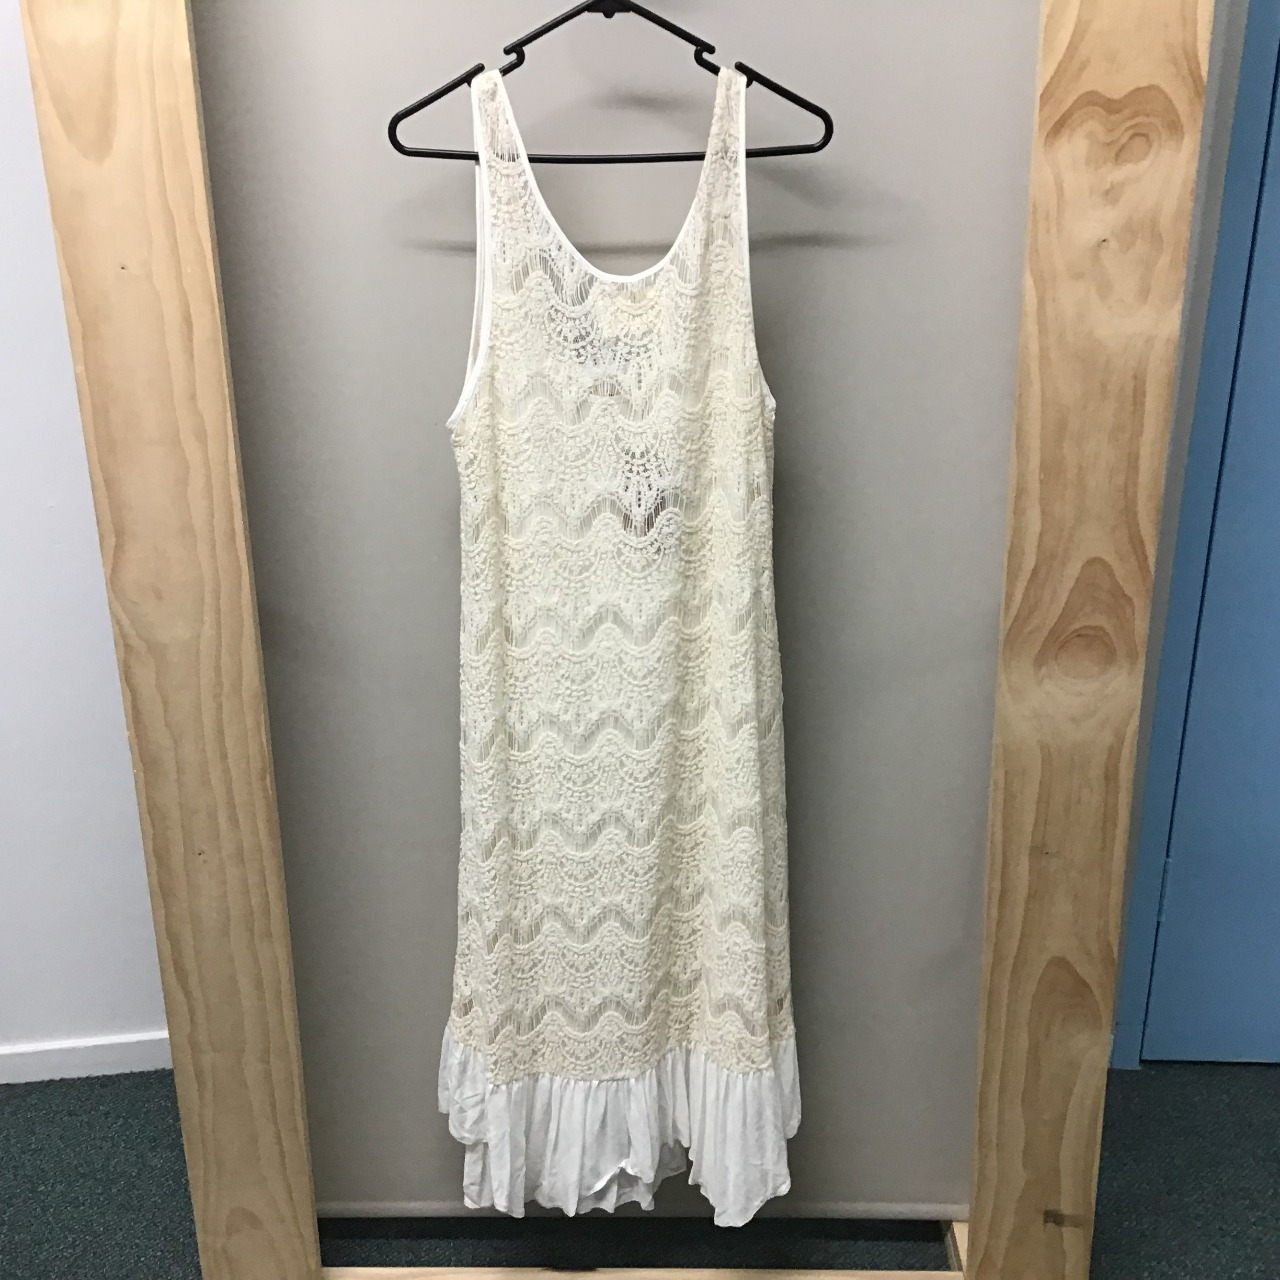 LaLaLuxe, Lace maxi dress, Size M, NWT, RRP $189